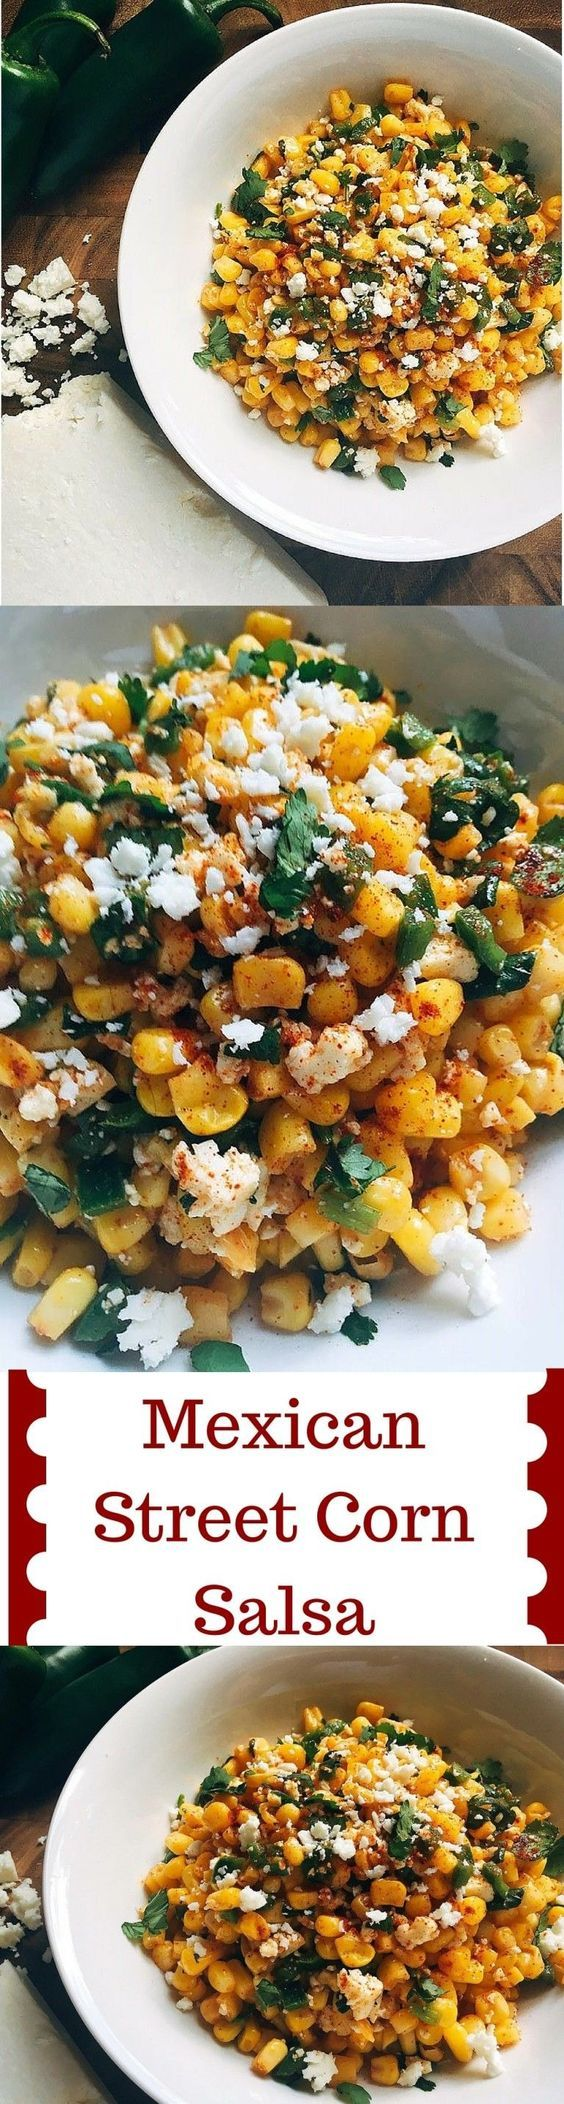 This fast and fresh snack combines all the flavors of Mexican Street Corn into a convenient and healthy snack! Takes just 5 minutes to make and also tastes great on tacos, enchiladas, and more! | Three Olives Branch